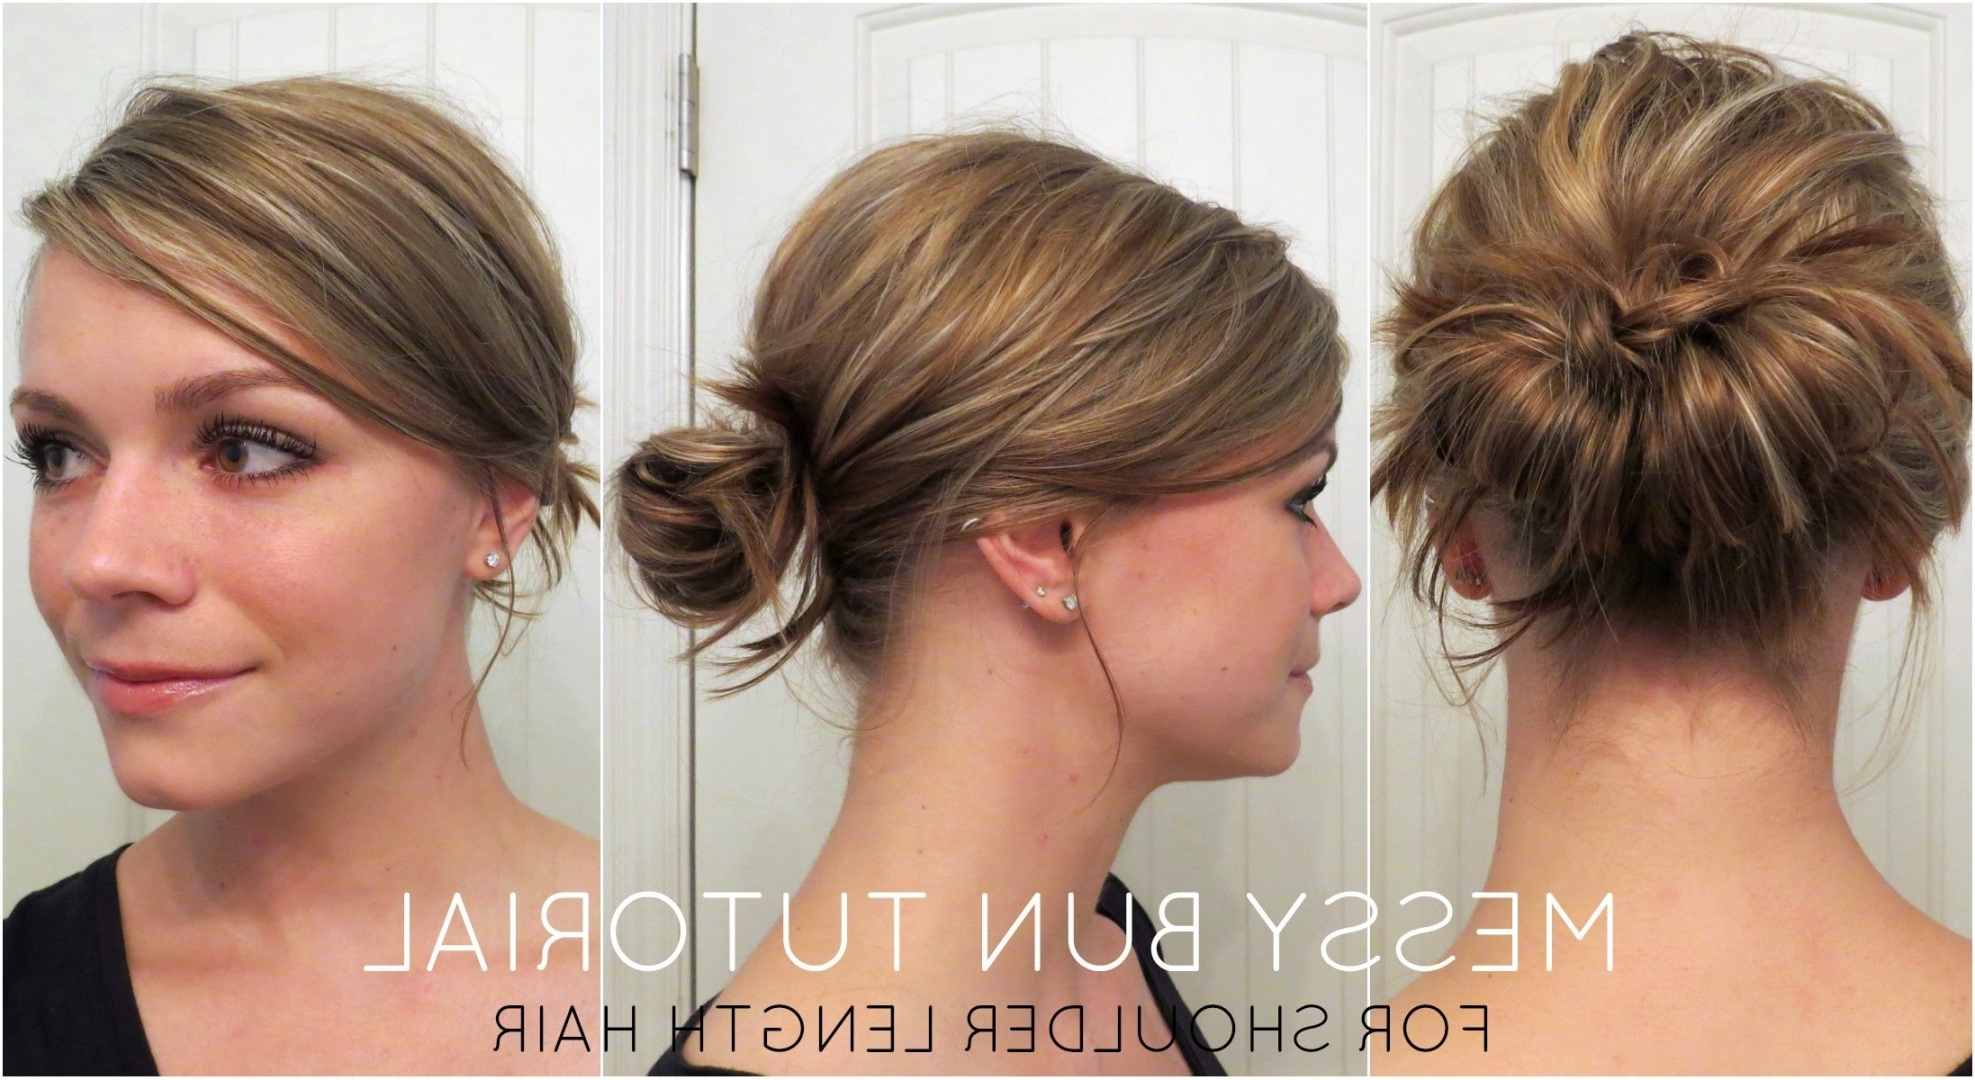 Messy Updos For Medium Hair Quick Updo Hairstyles For Medium In Quick Updo Hairstyles (View 7 of 15)